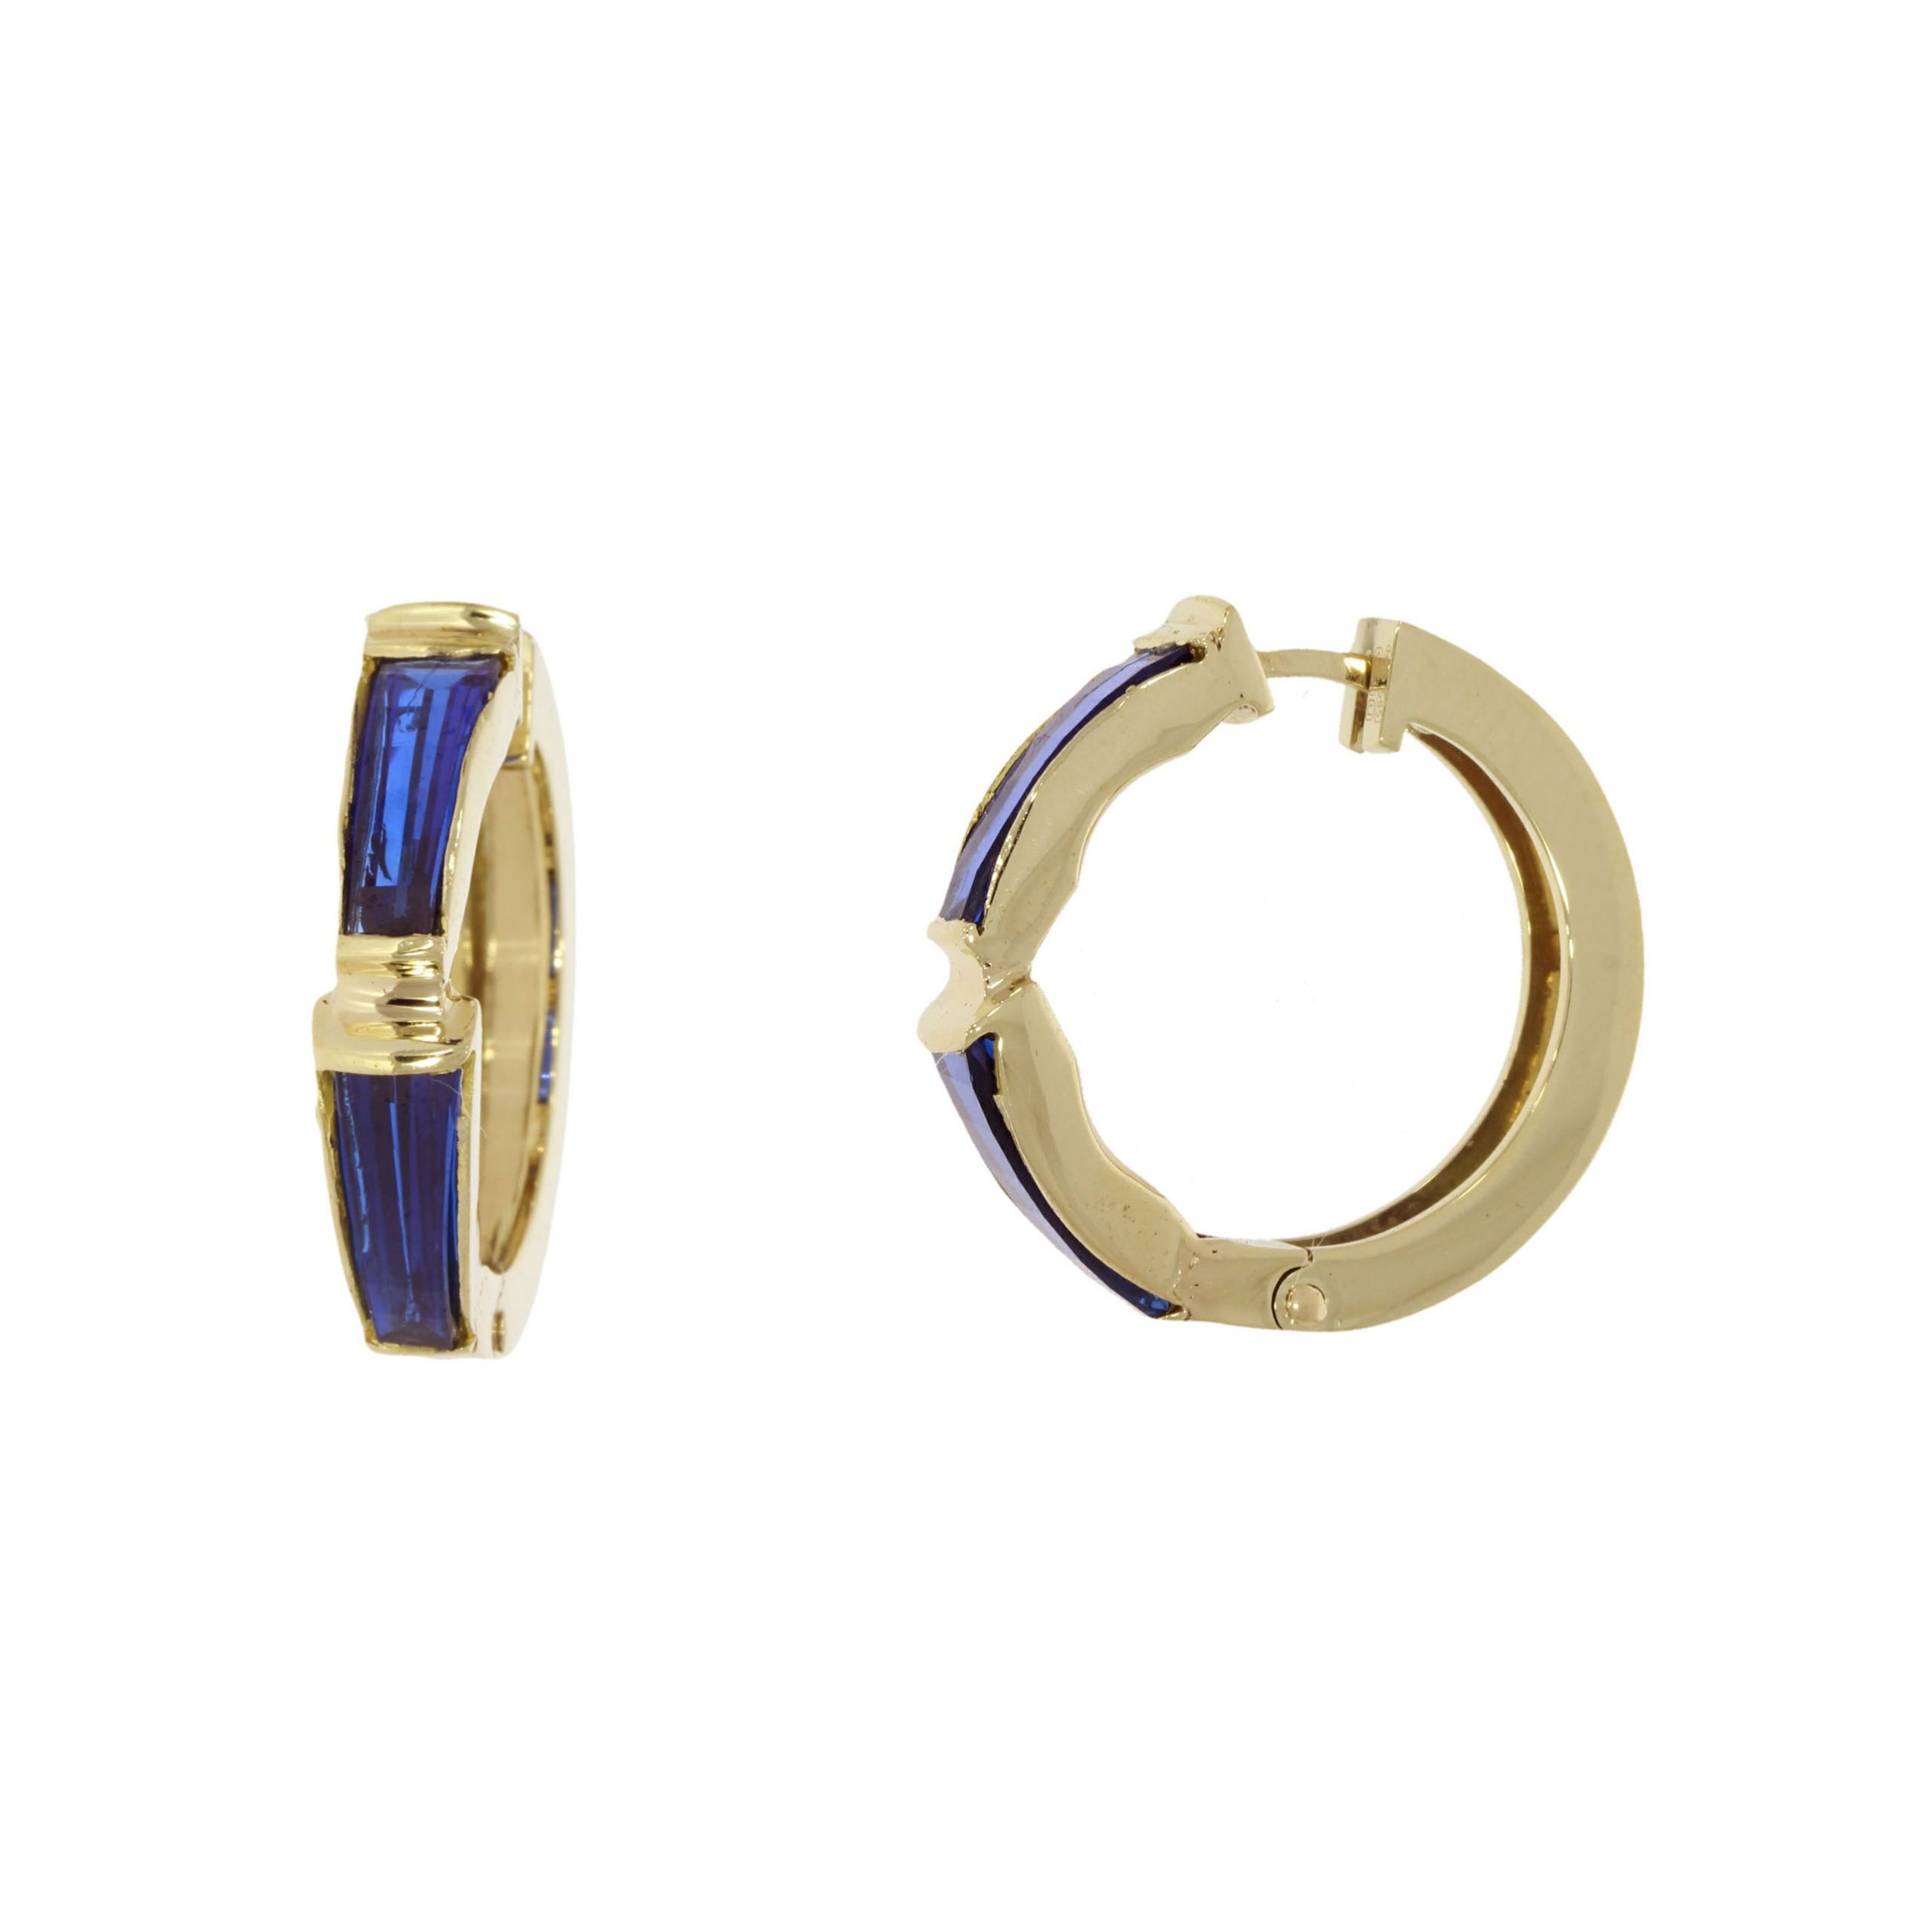 Retro 22ct and 14ct blue glass hoop earrings of unusual shape.